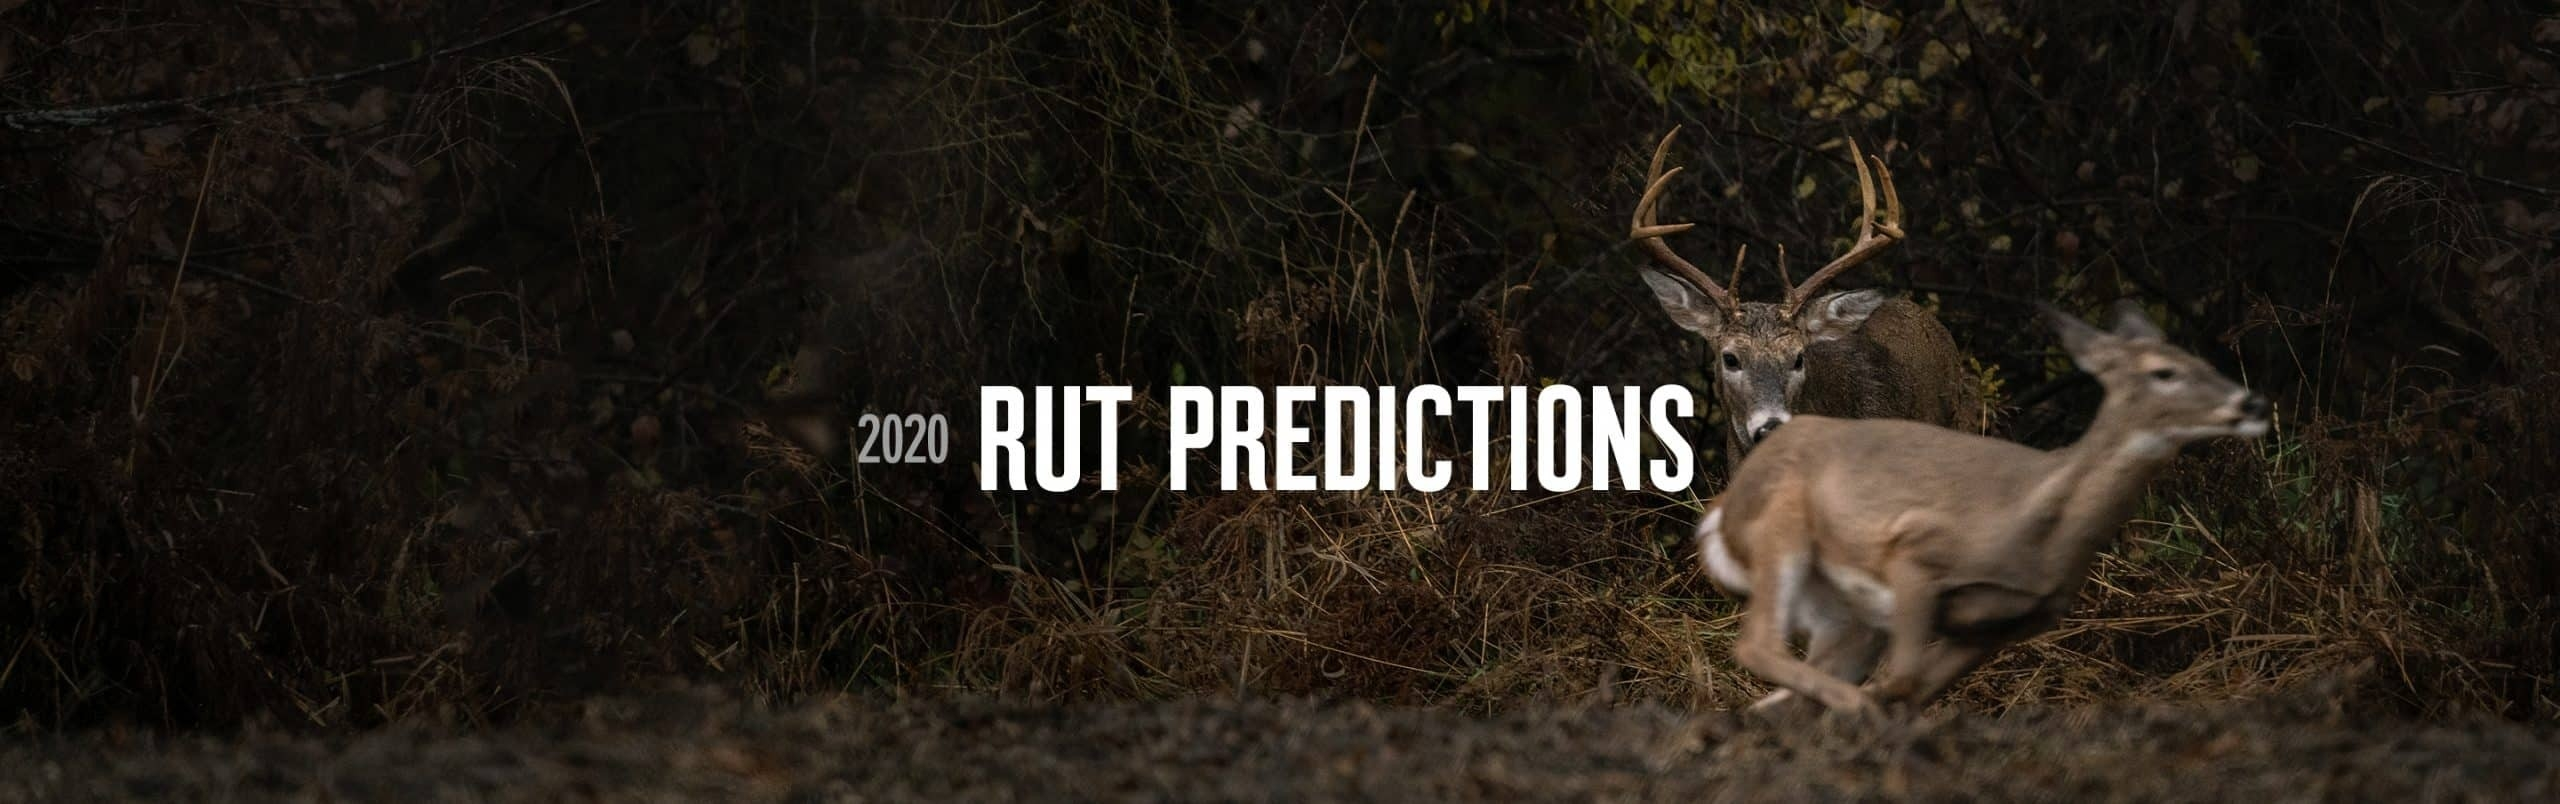 2020 Rut Predictions | Onx Maps  Missori Rut Prediction 2021